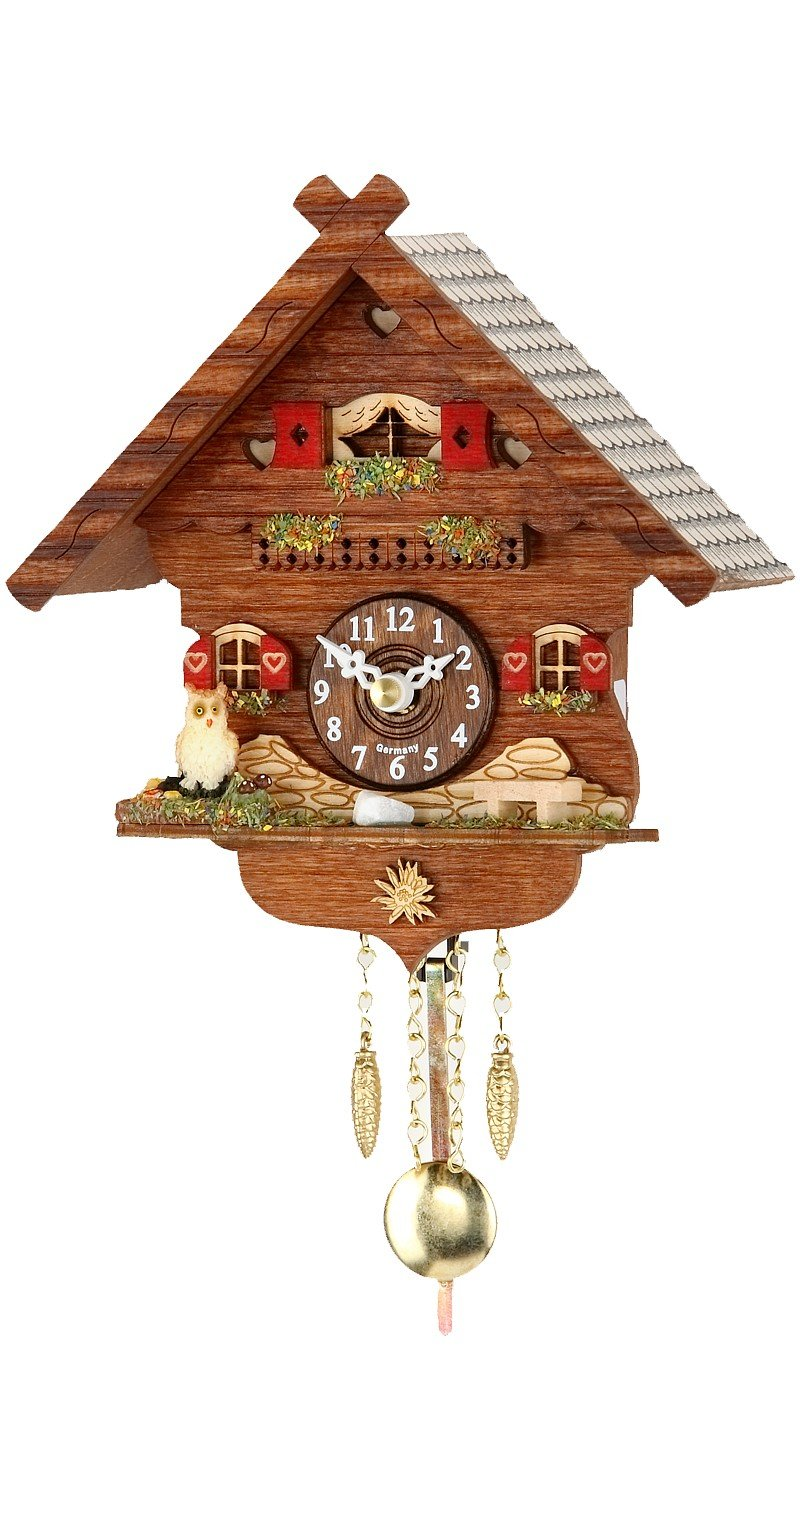 Trenkle Kuckulino Black Forest Clock with Quartz Movement and Cuckoo Chime TU 2043 PQ by Trenkle